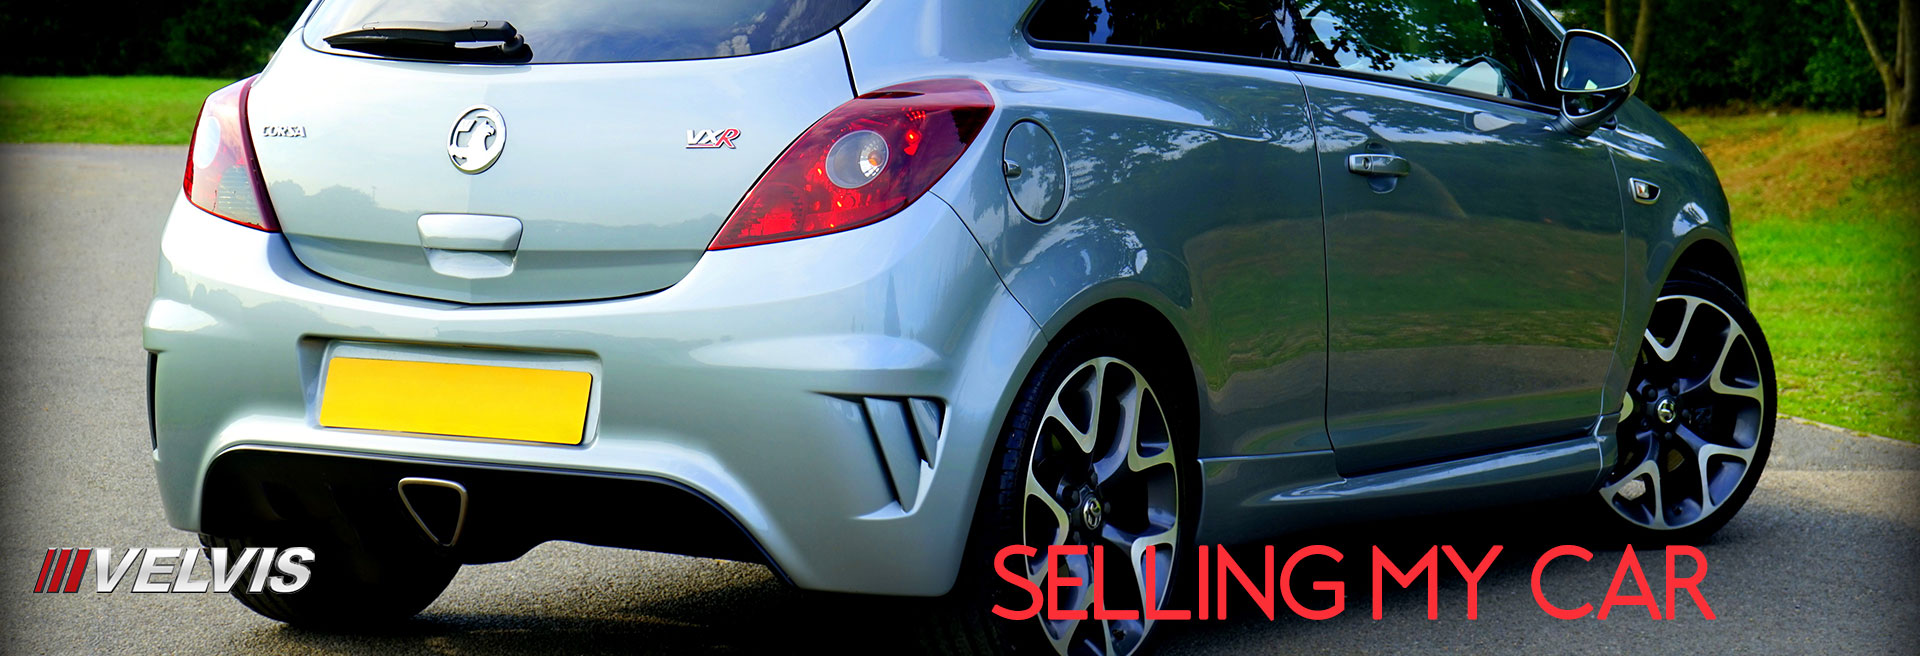 Sell your Car to Velvis cars in Essex